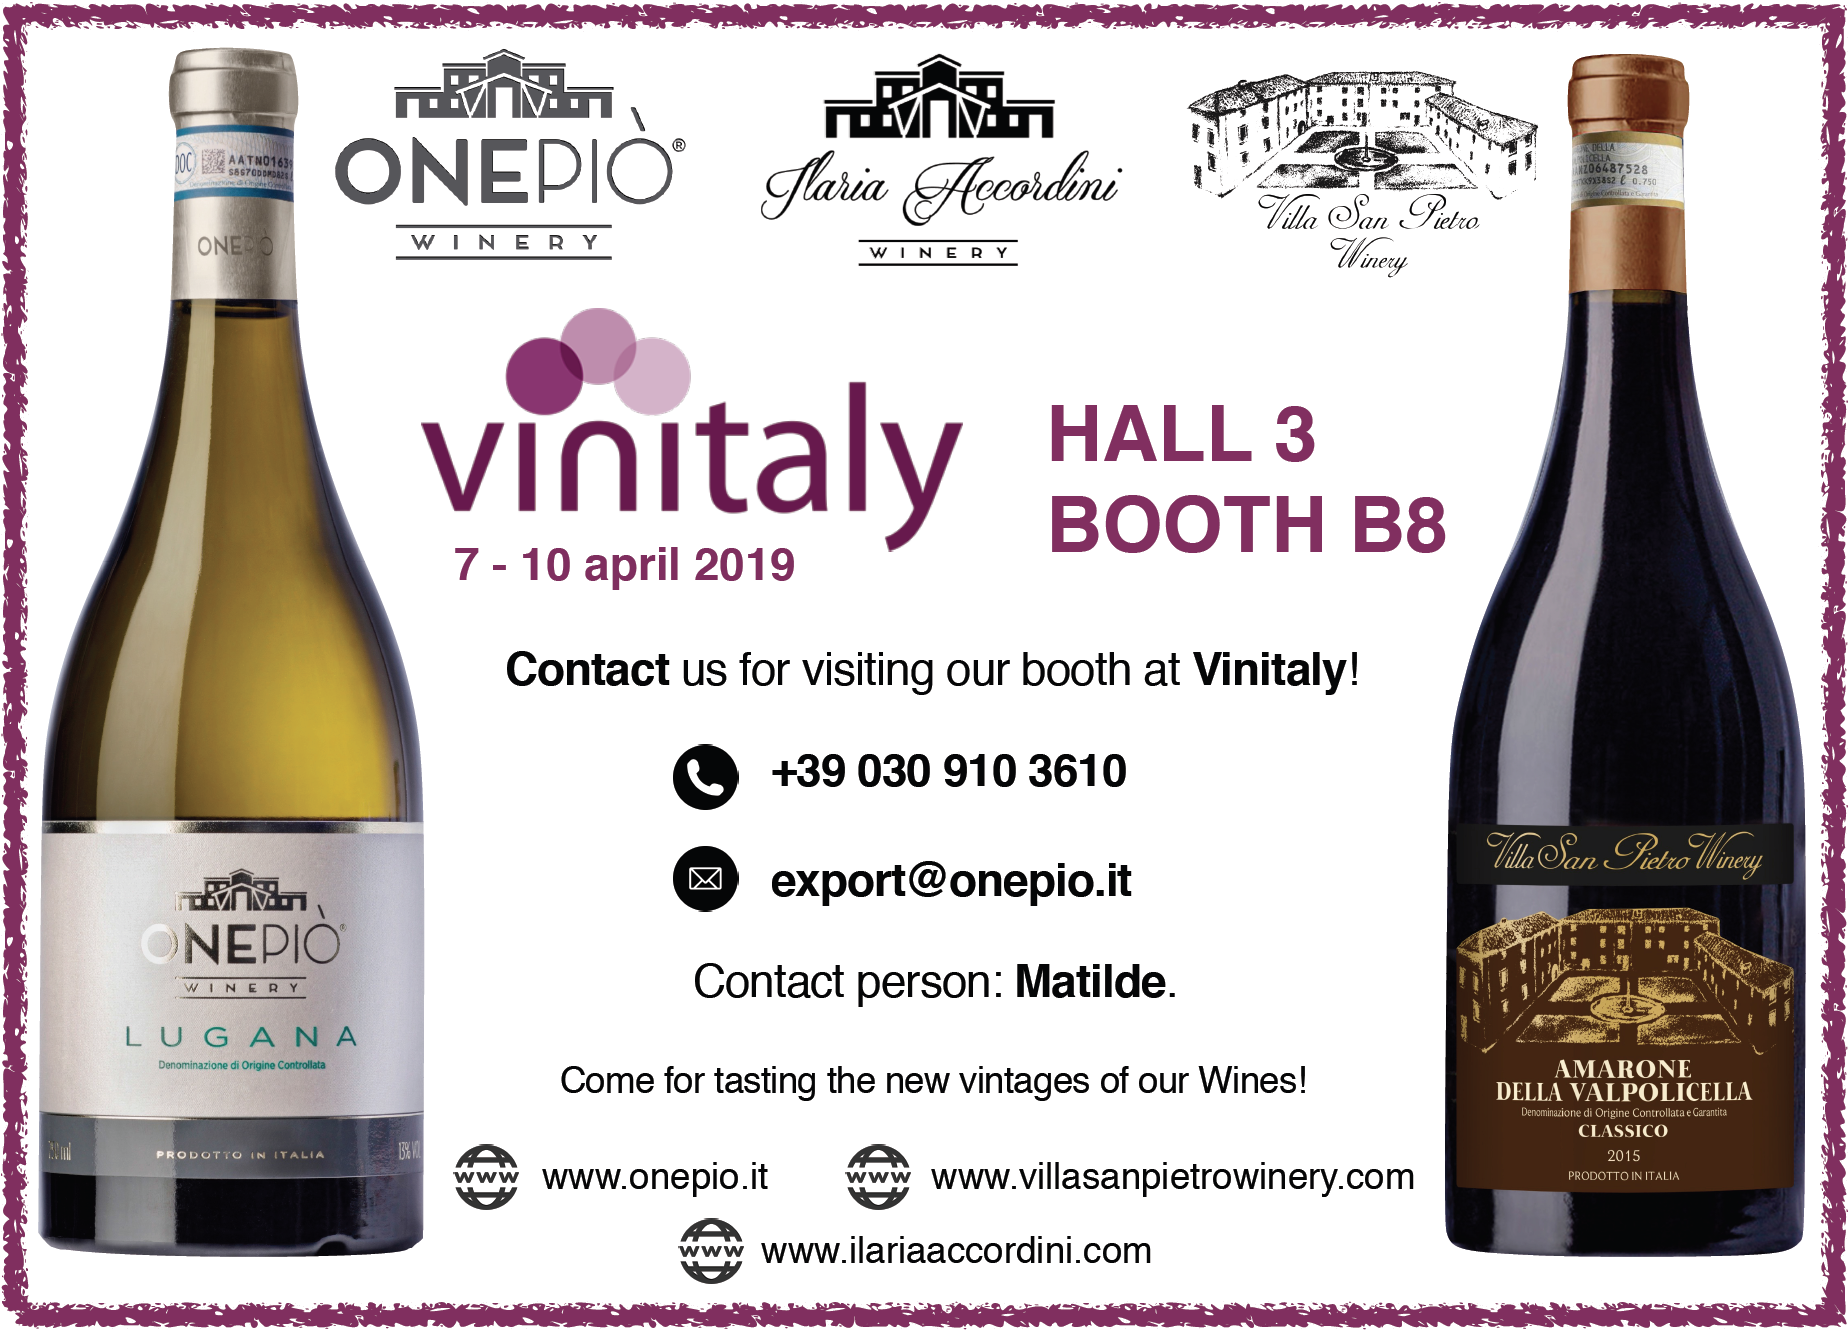 Vinitaly 2019 - from 7th to 10th April 2019 - We will wait for You at Vinitaly - Hall 3, Booth B8!Come to visit us and You will meet Onepiò Staff who will present the new brands Villa San Pietro and Ilaria Accordini Winery!